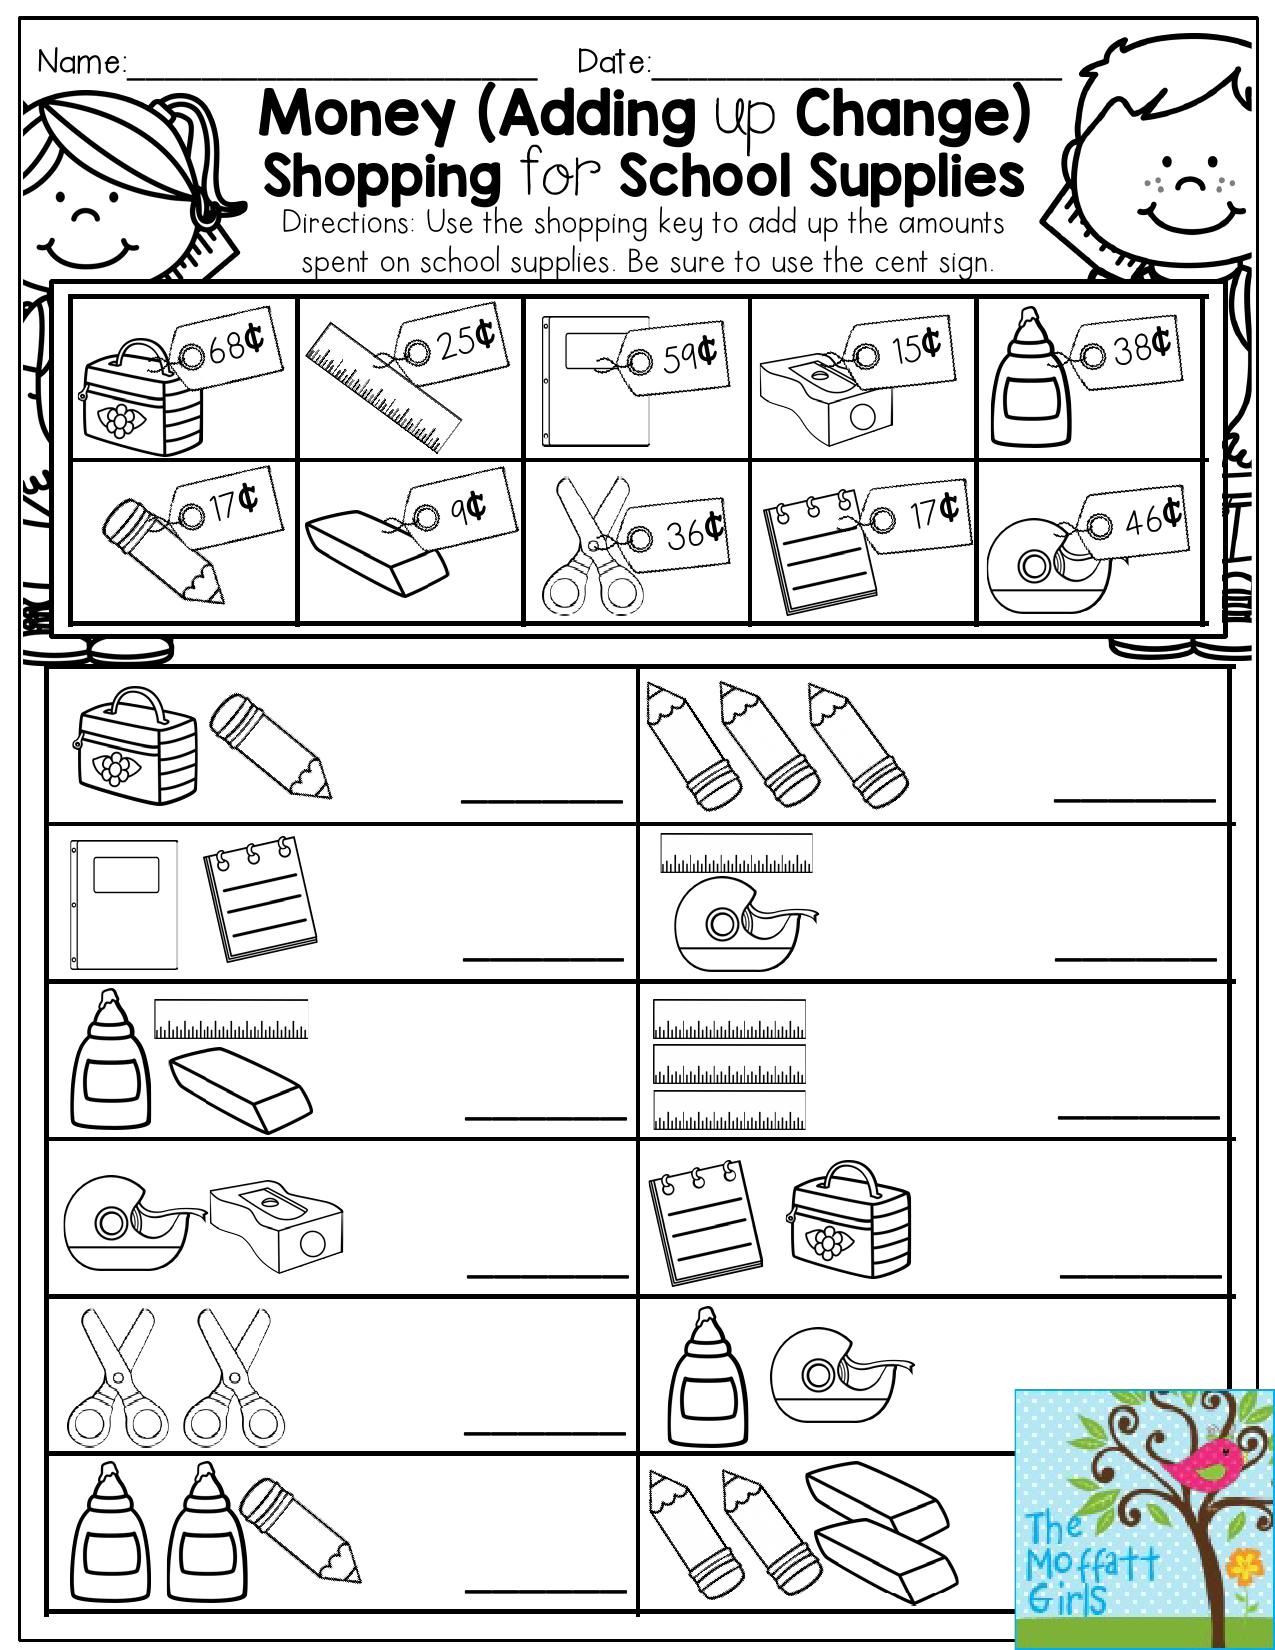 Shopping Math Worksheets Money Adding Up Change Shopping for School Supplies Fun